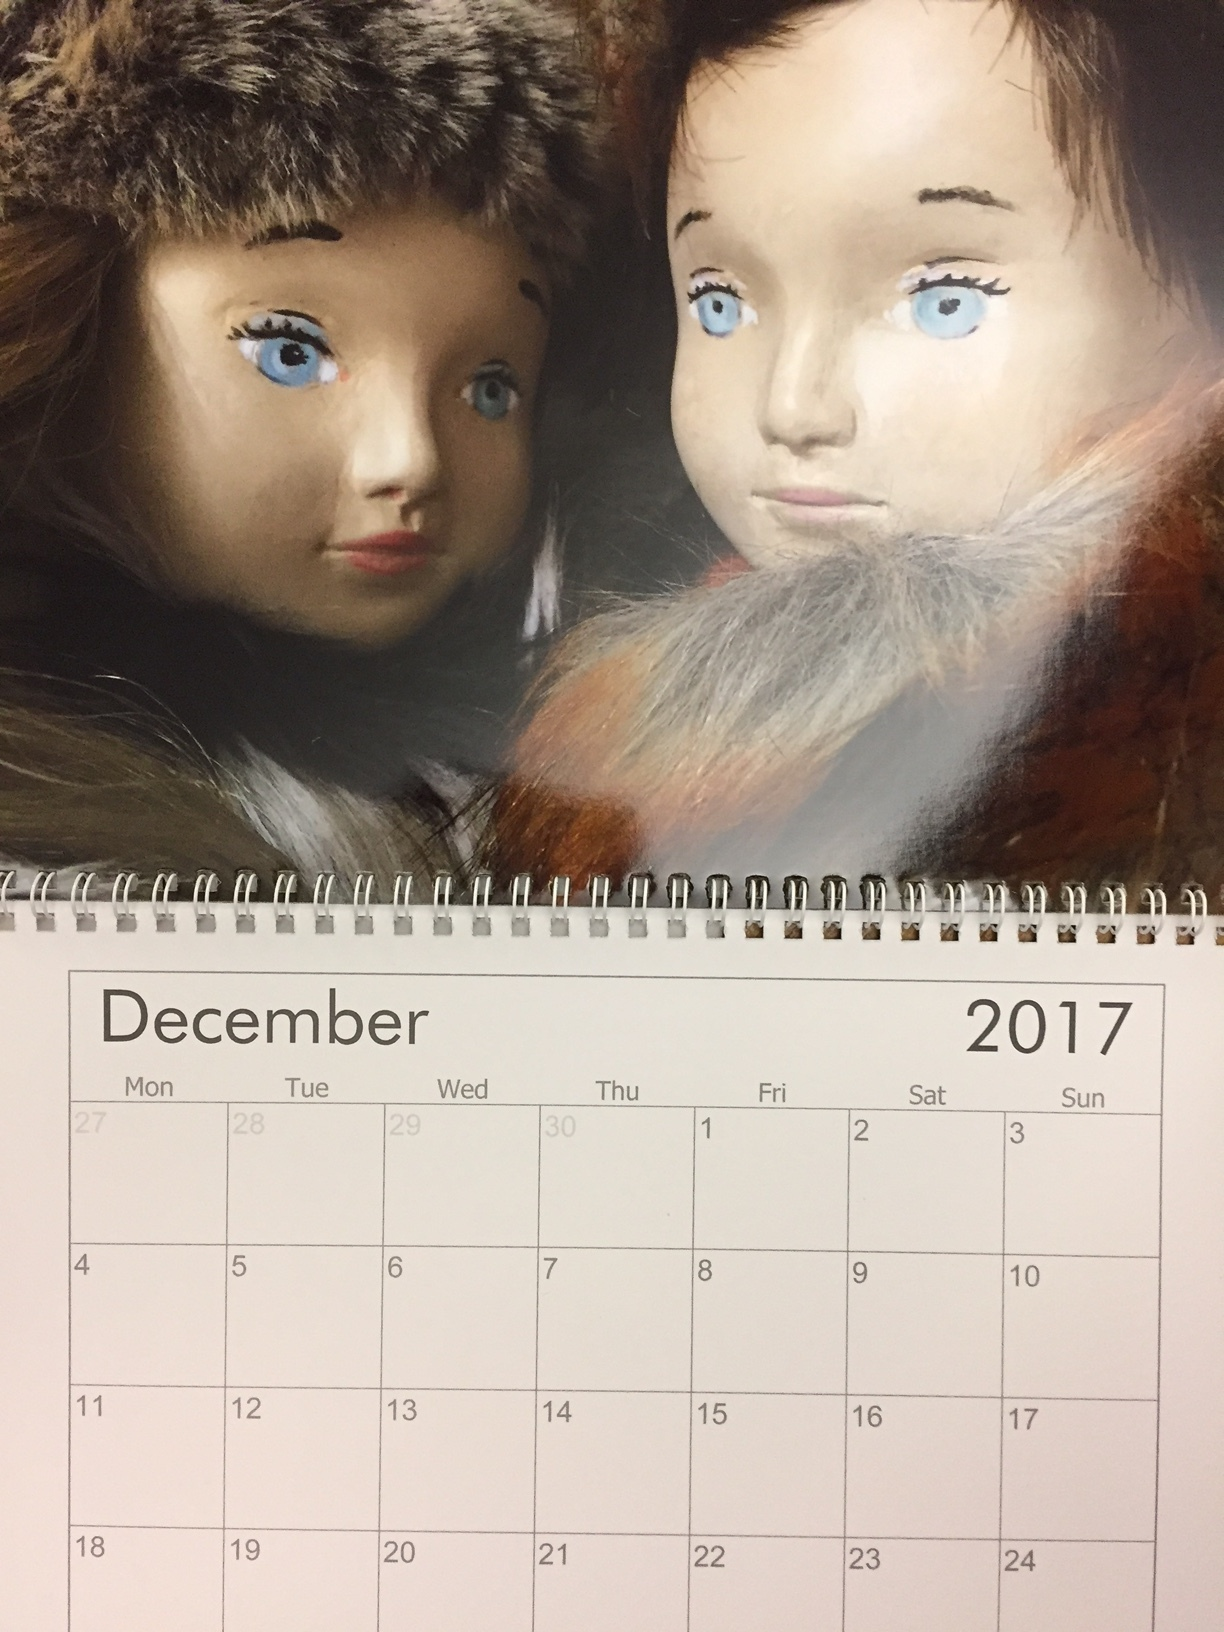 Nini Doll - DCGB calendar feature